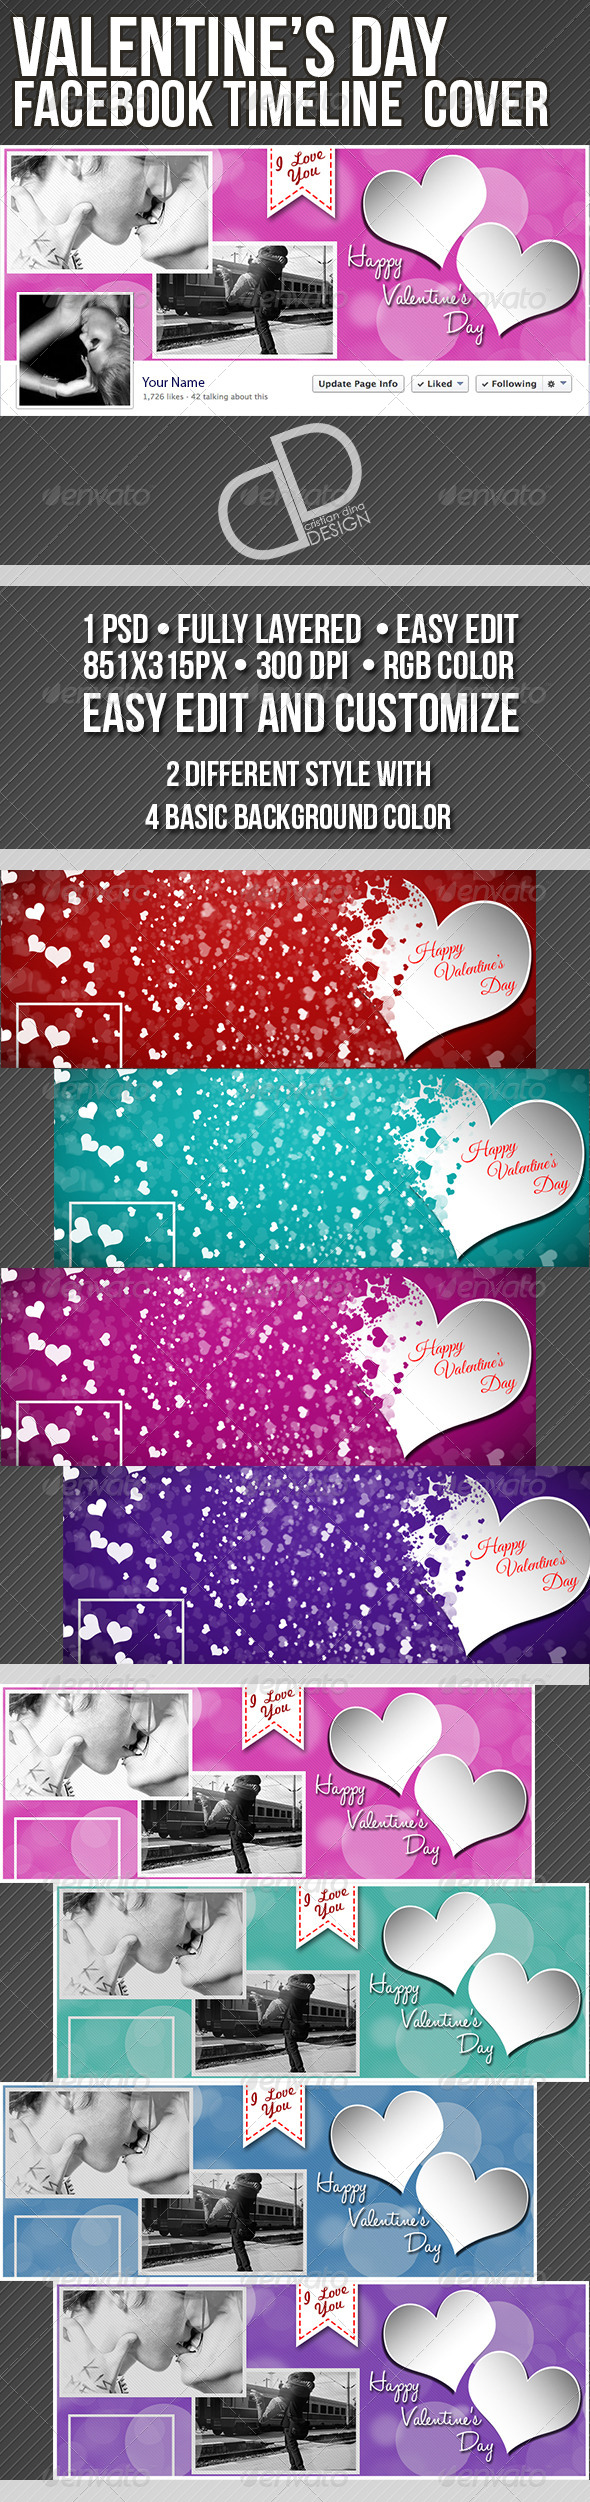 GraphicRiver Valentine s Day Timeline Cover 6825258